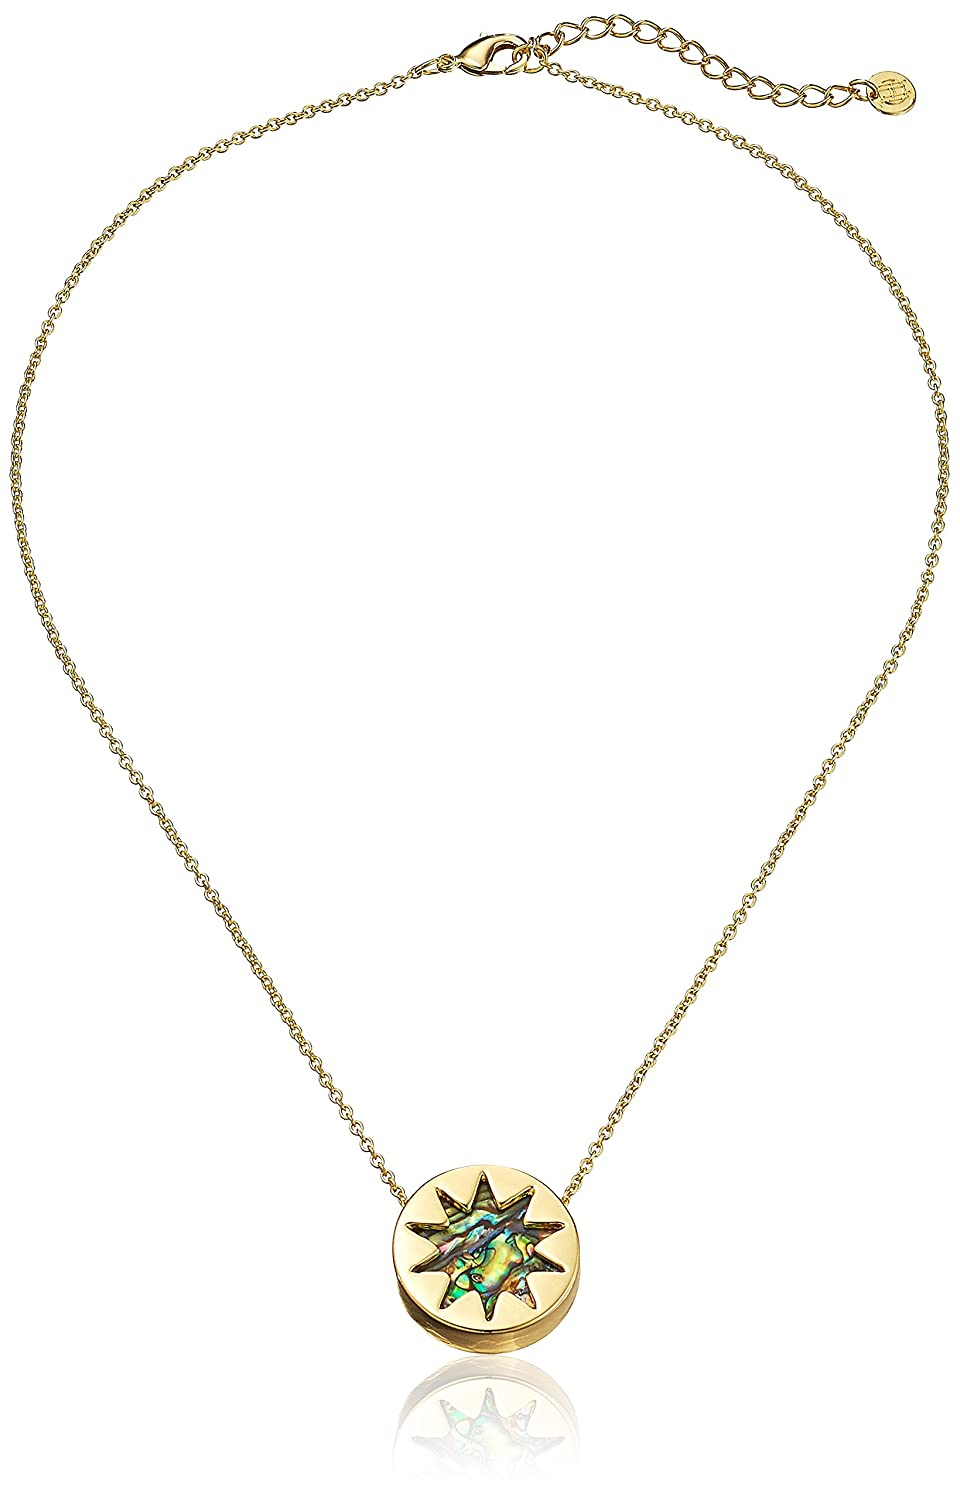 necklace gold summer avinas sunburst sale products jewelry